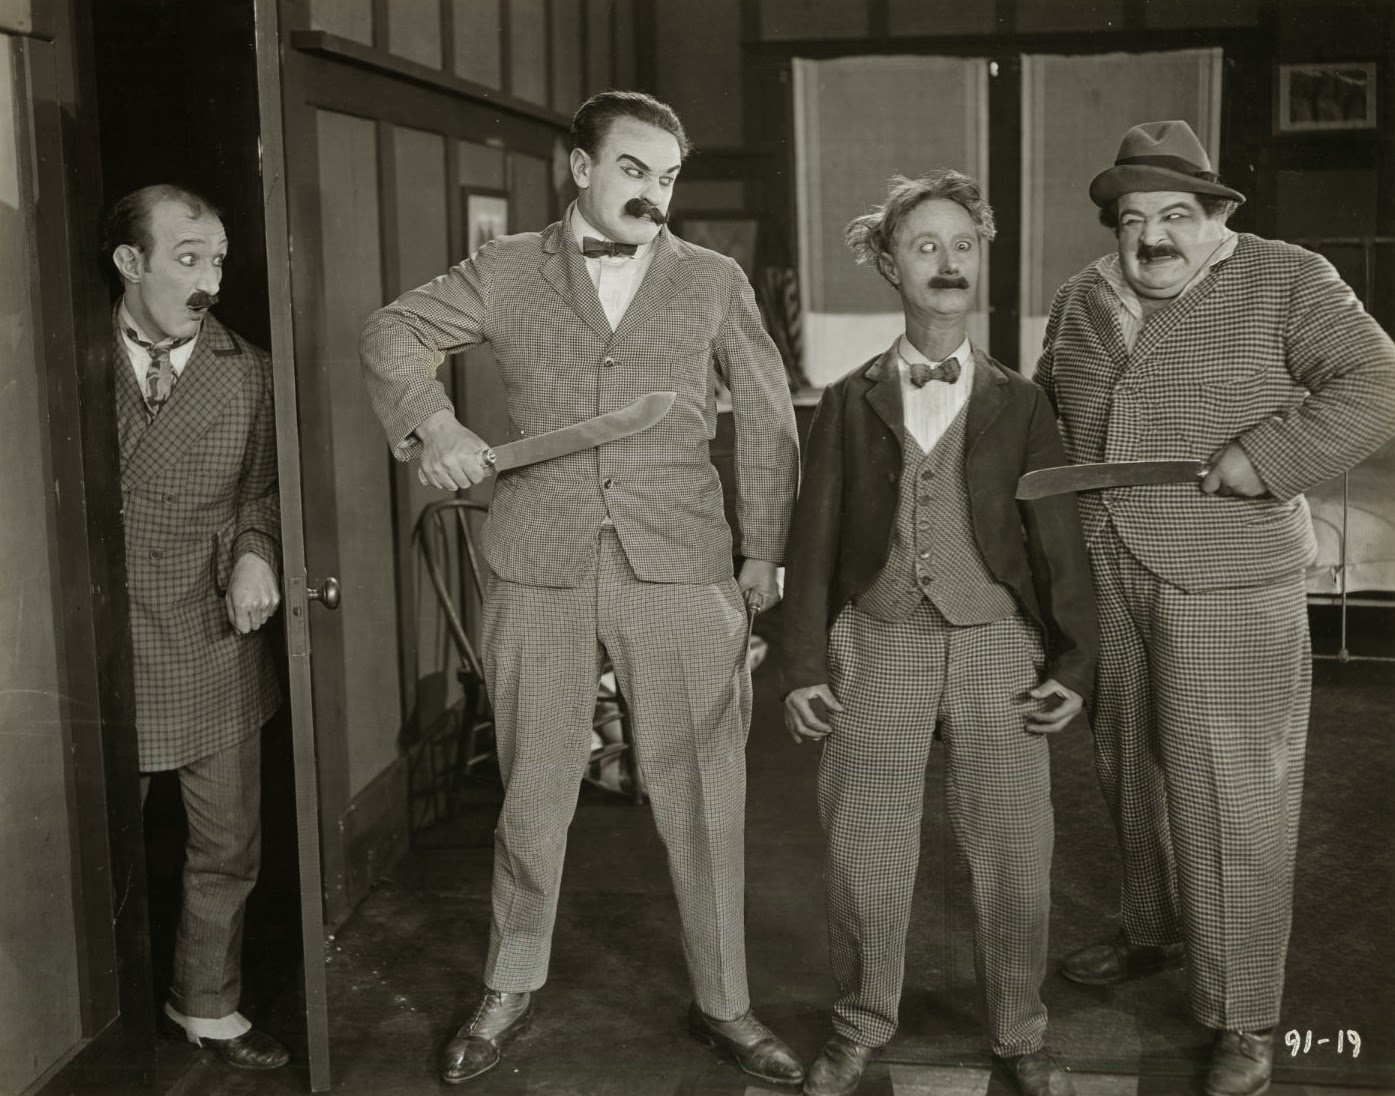 Still from HOME TALENT (1921) with James Finlayson, Eddie Gribbon, Ben Turpin and Kalla Pasha